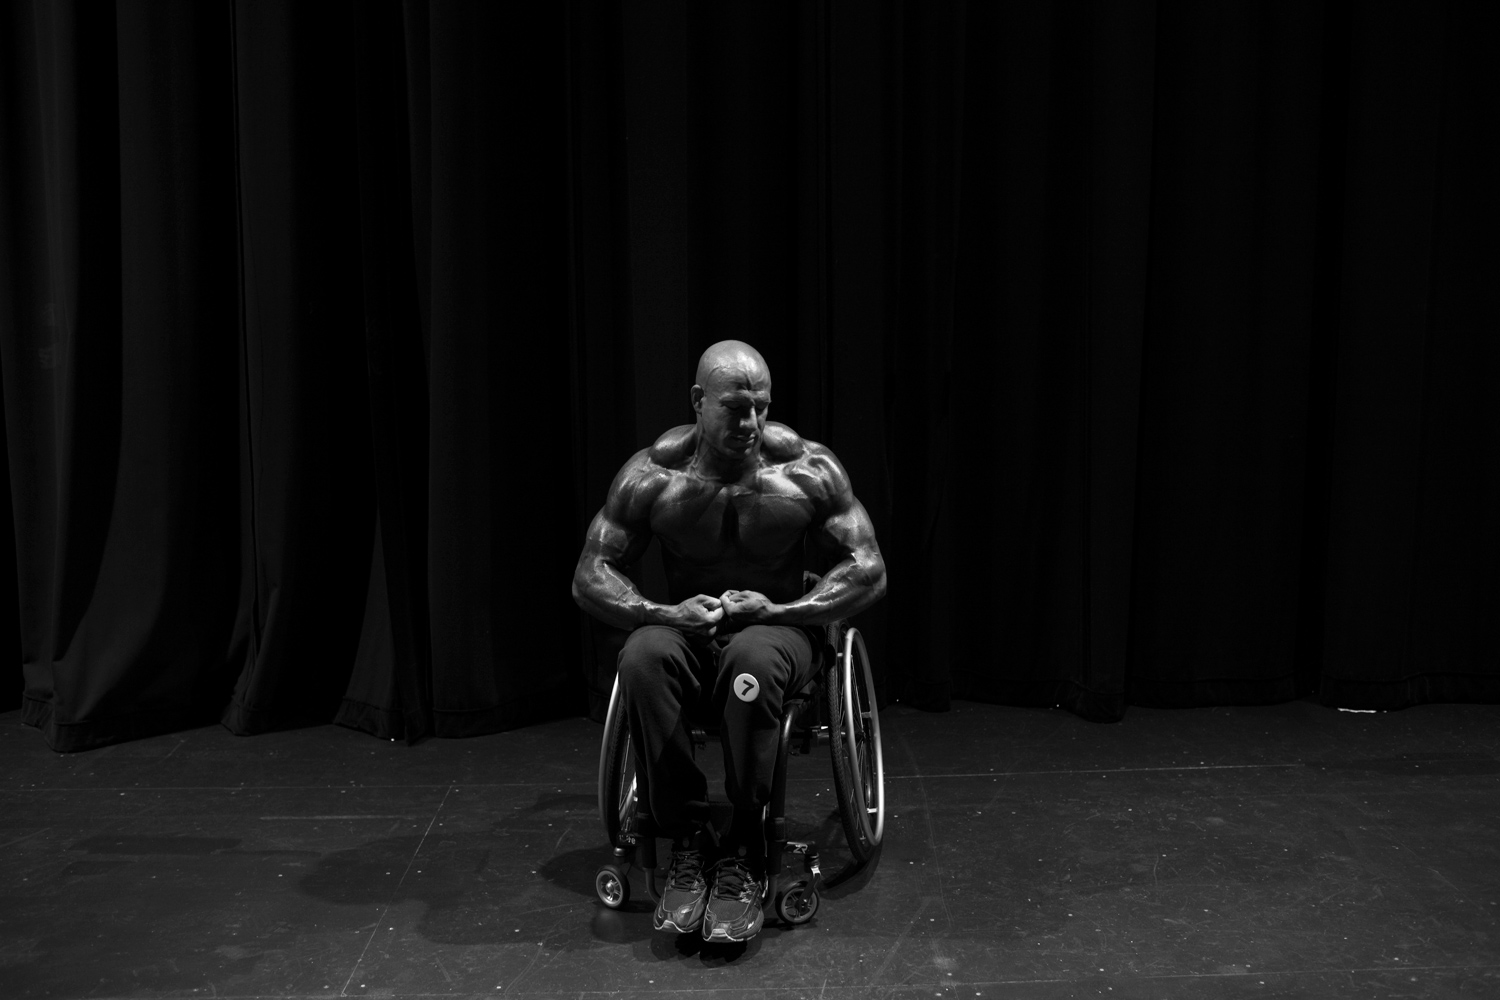 Nick Scott practices his poses backstage at the first ever Wheelchair Pro Show in Houston.